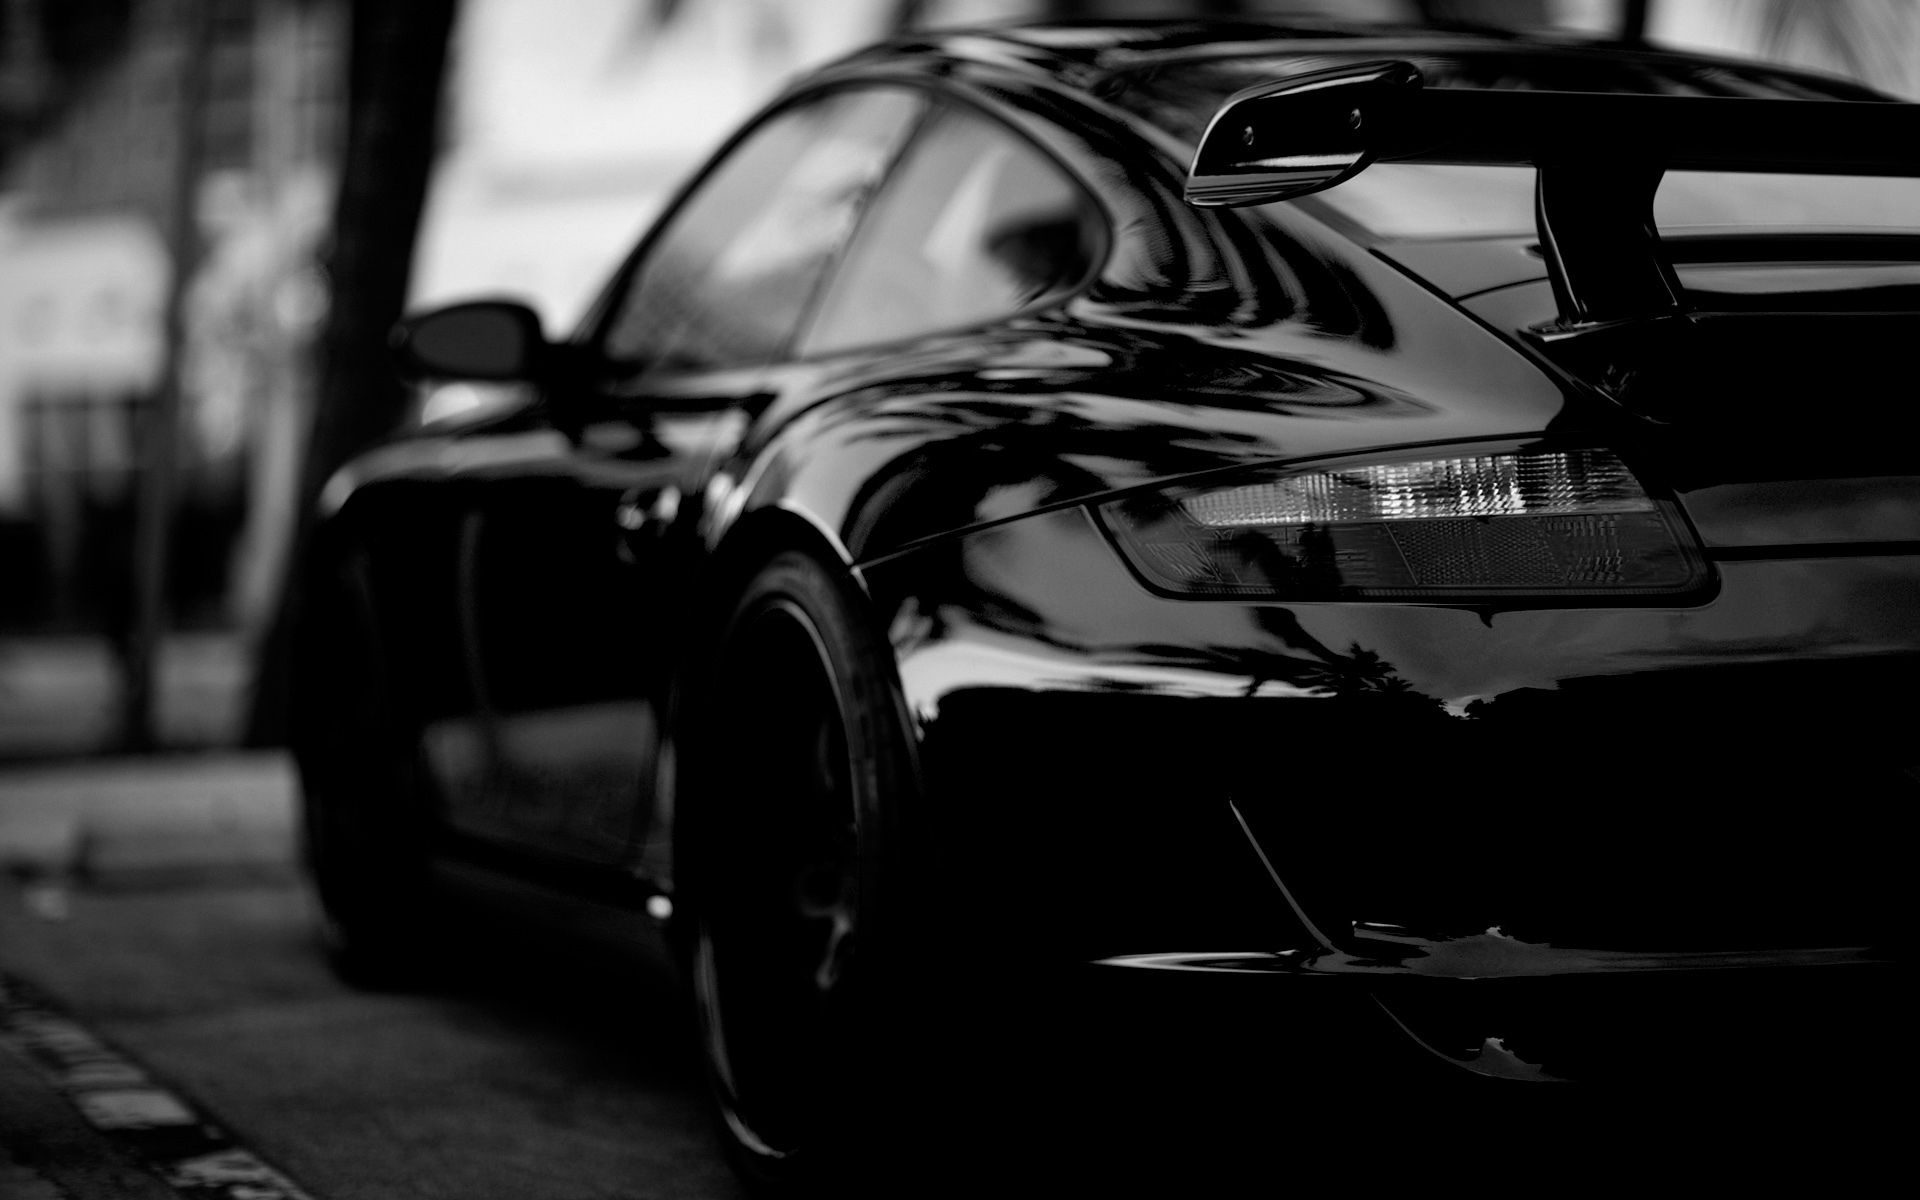 black Porsche carrera monochrome HD Wallpaper